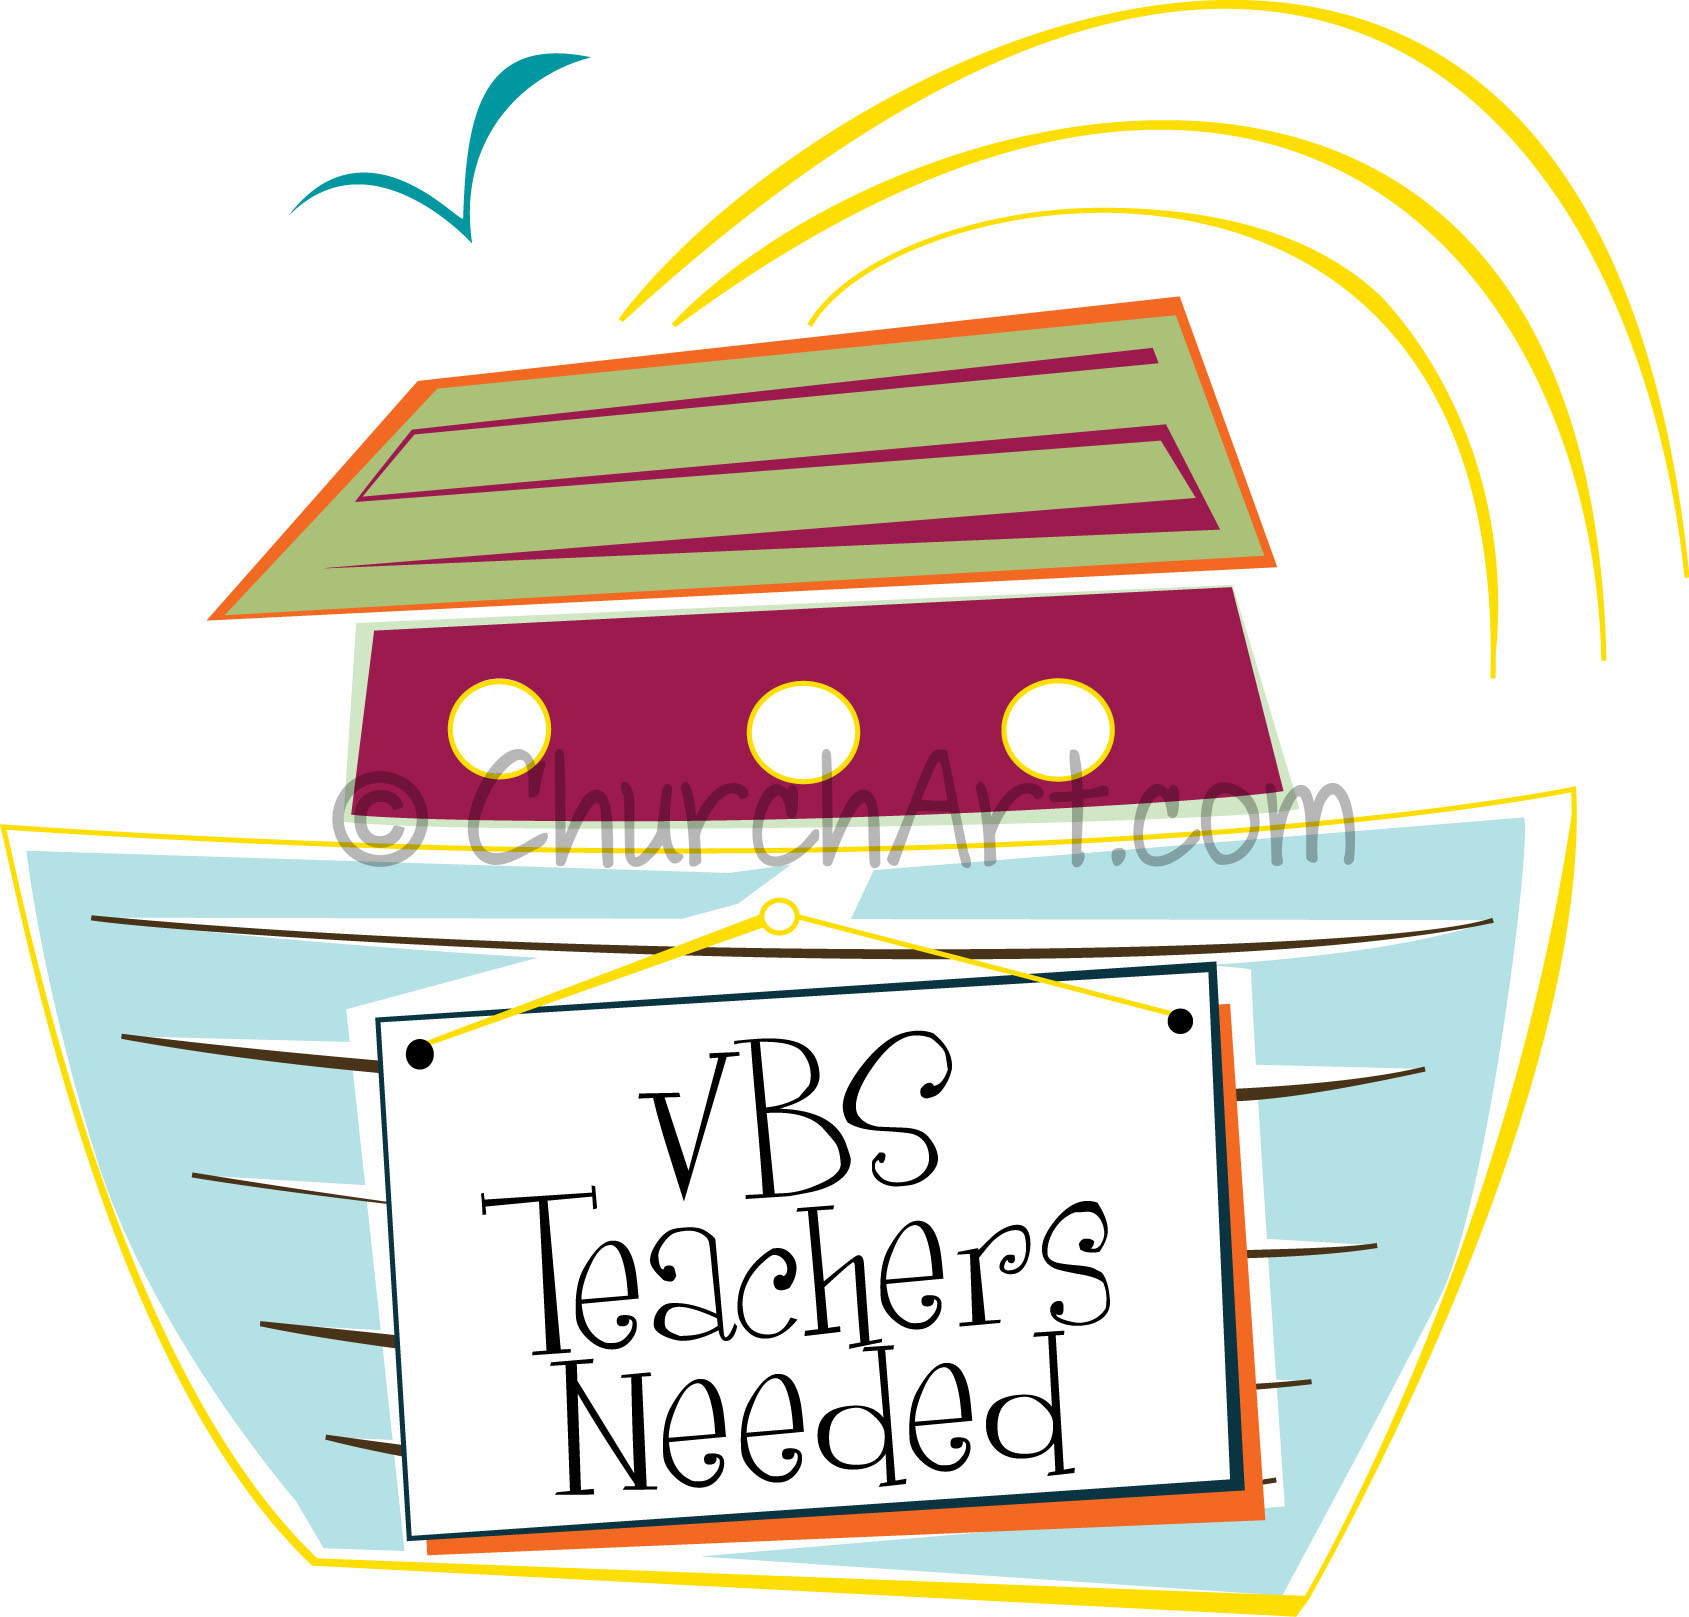 Vacation Bible School Clip-Art with ark image and VBS teachers needed caption